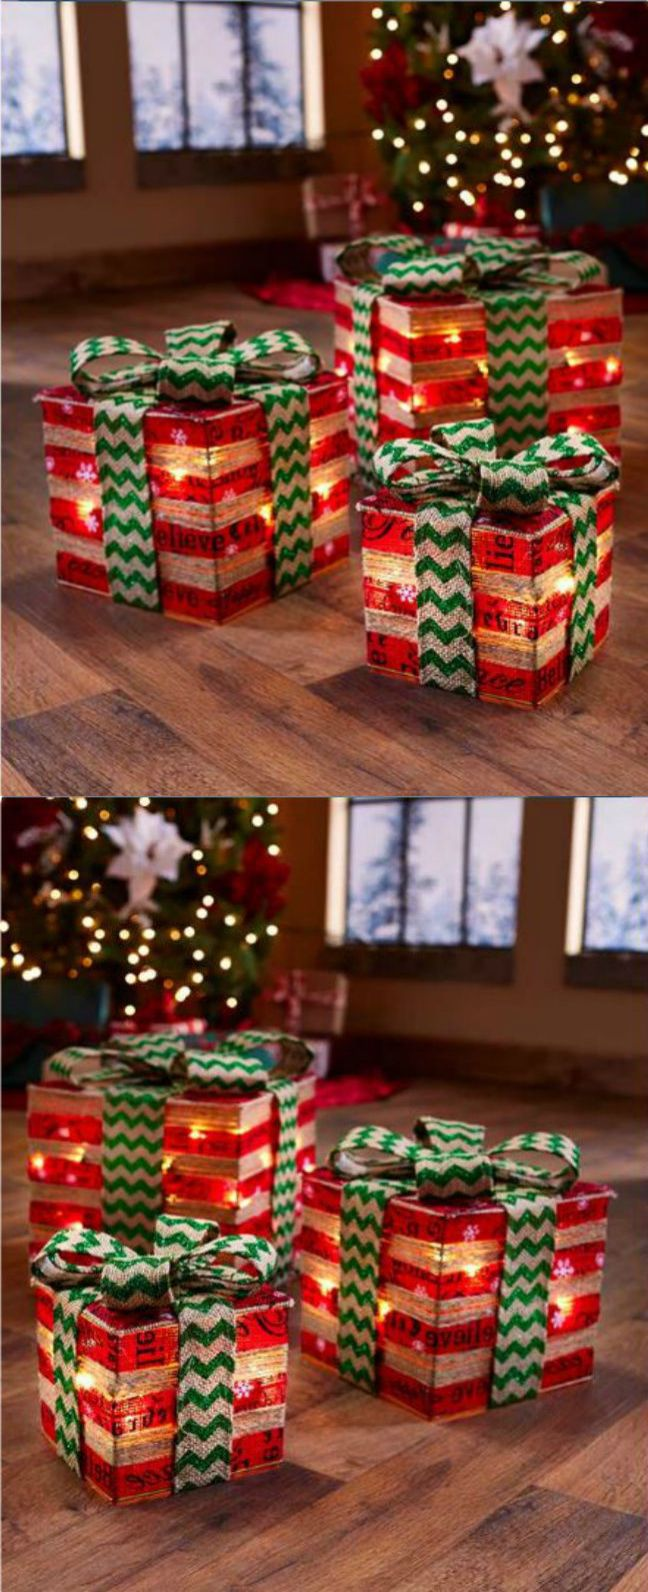 Christmas Gift Box Decorations Christmas Gift Ideas Christmas Gifts Set Of 3 Lighted Gift Box